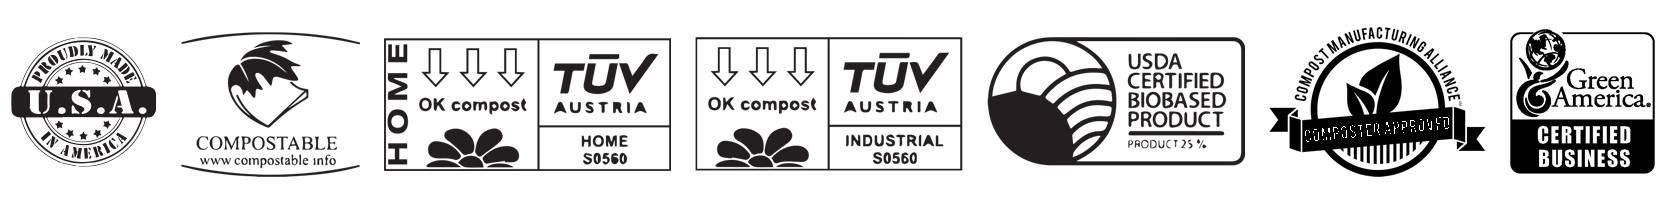 beyondGREEN Product Certifications